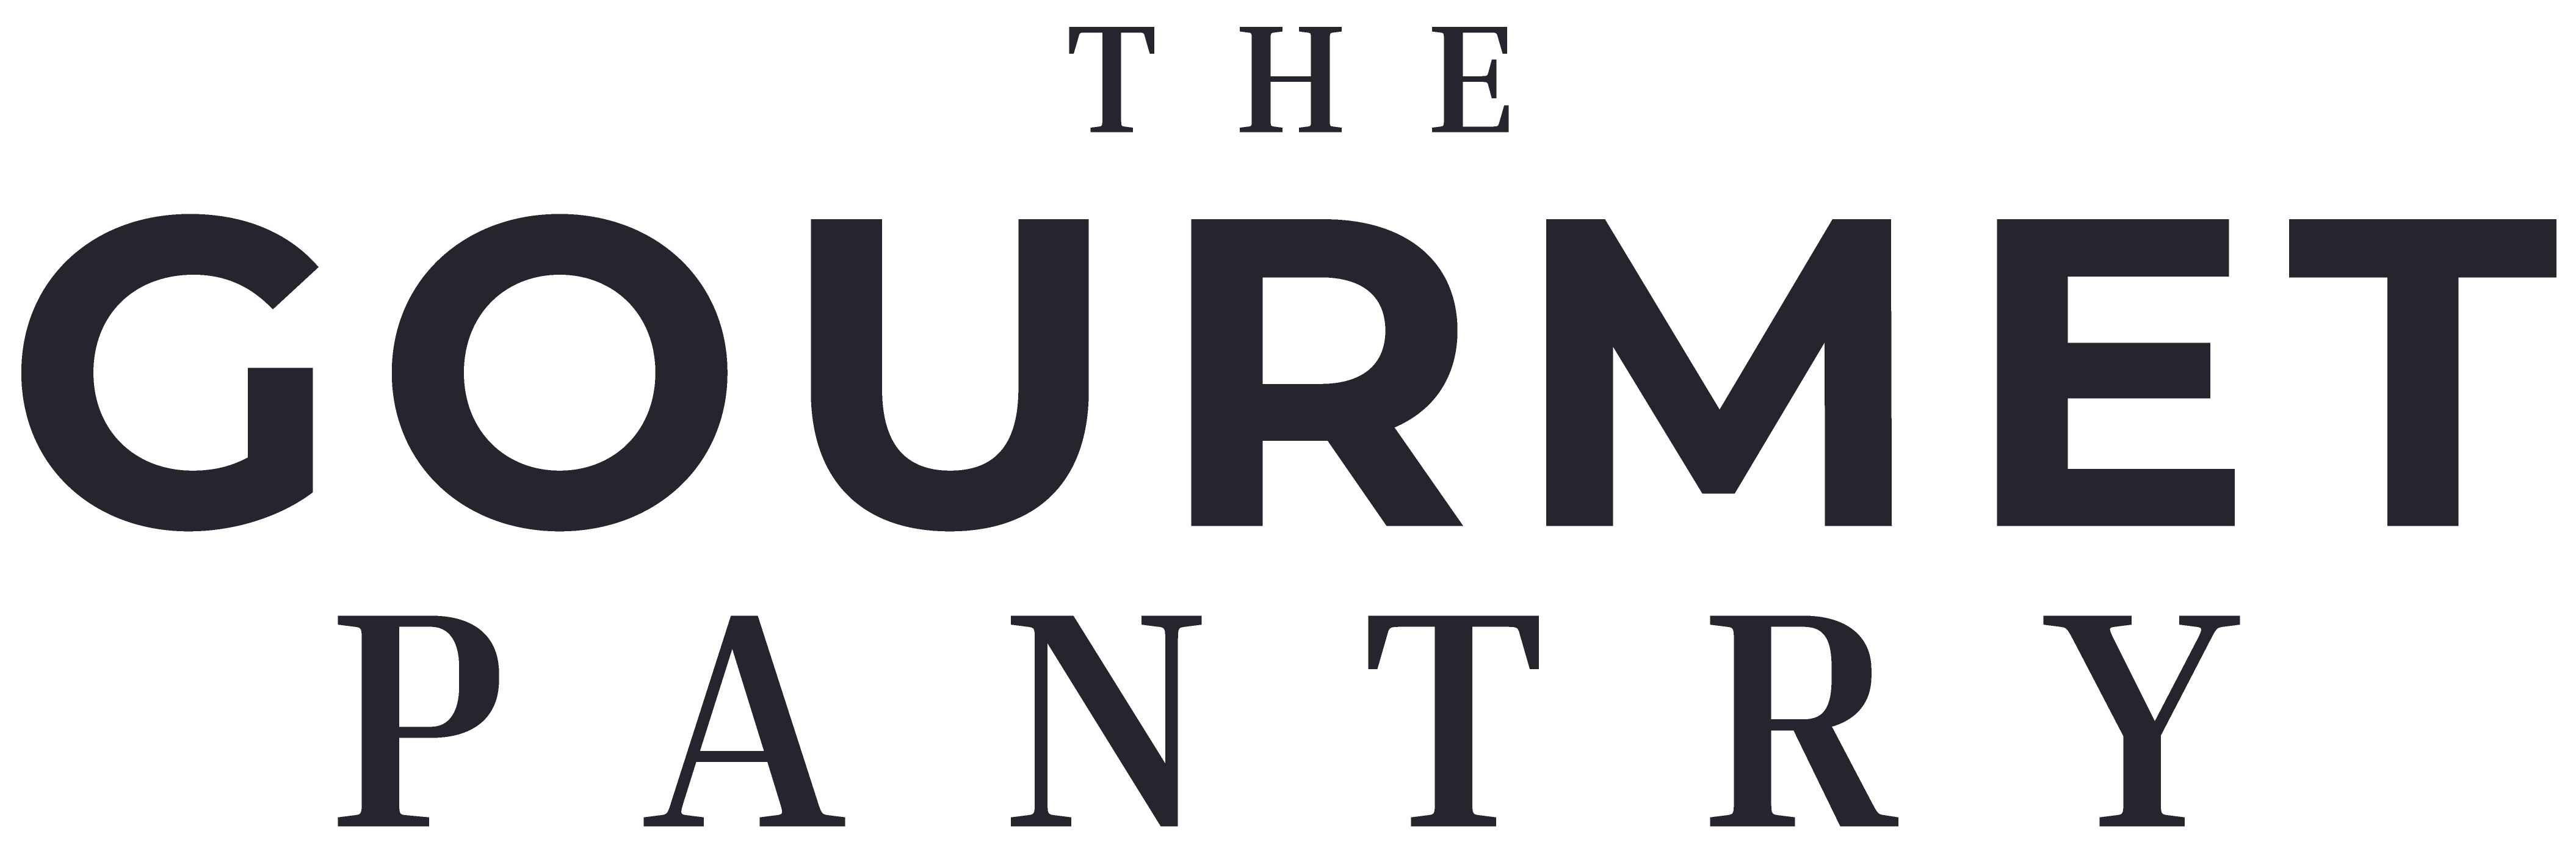 The Gourmet Pantry logo